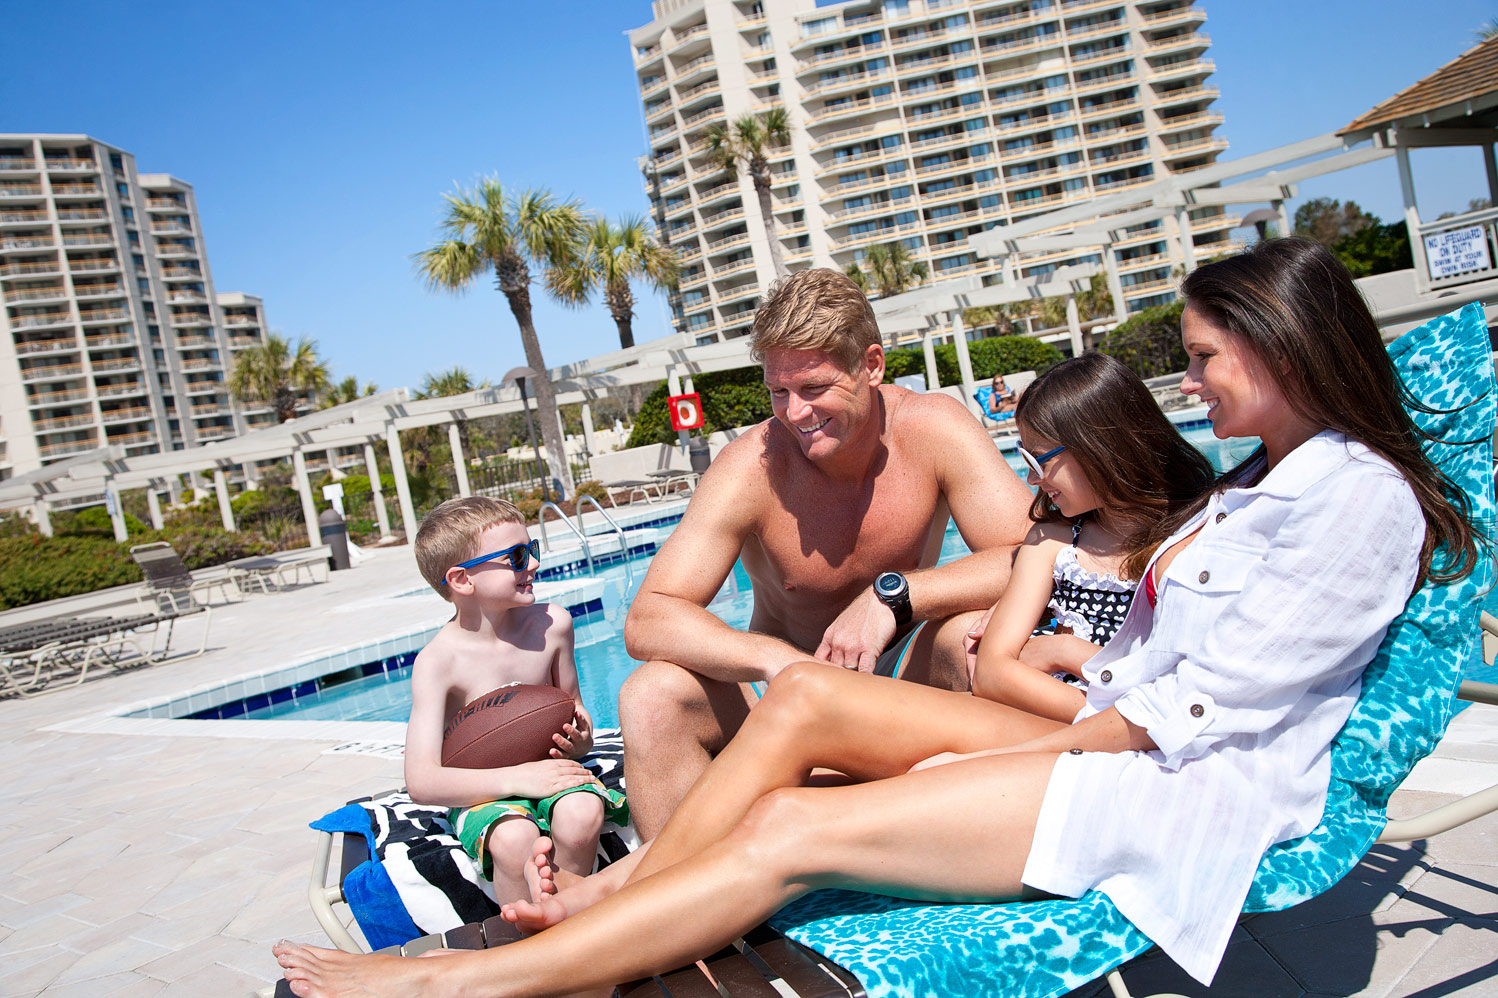 Relax poolside and have some fun at Ocean Creek Resort!